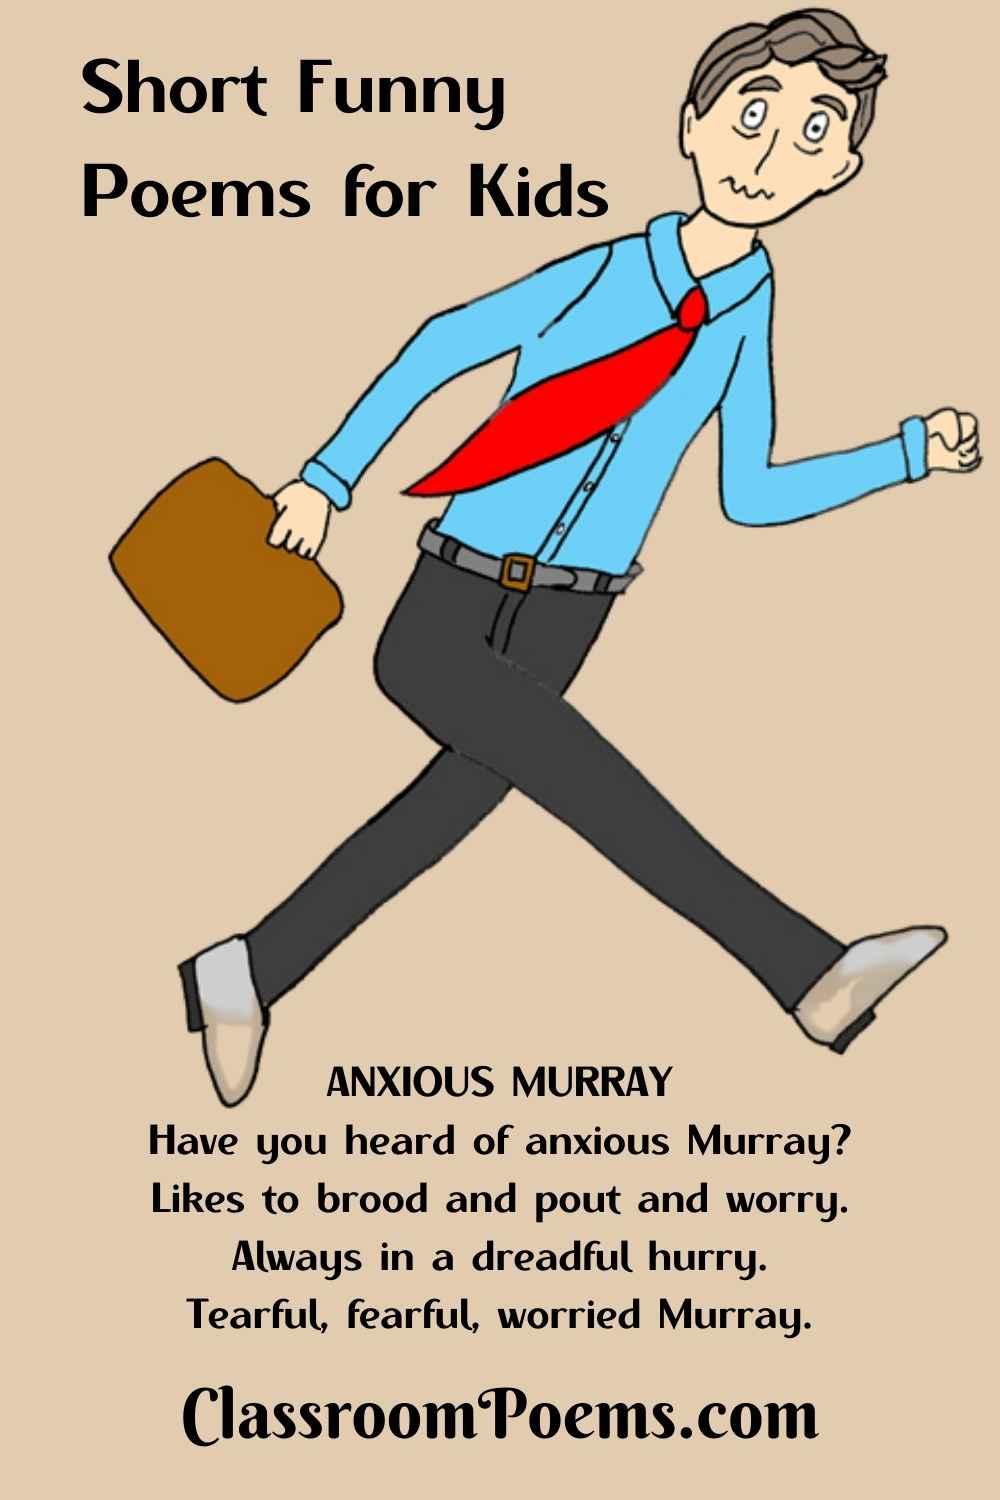 Anxious man cartoon. ANXIOUS MURRAY, a funny short poem by Denise Rodgers on ClassroomPoems.com.